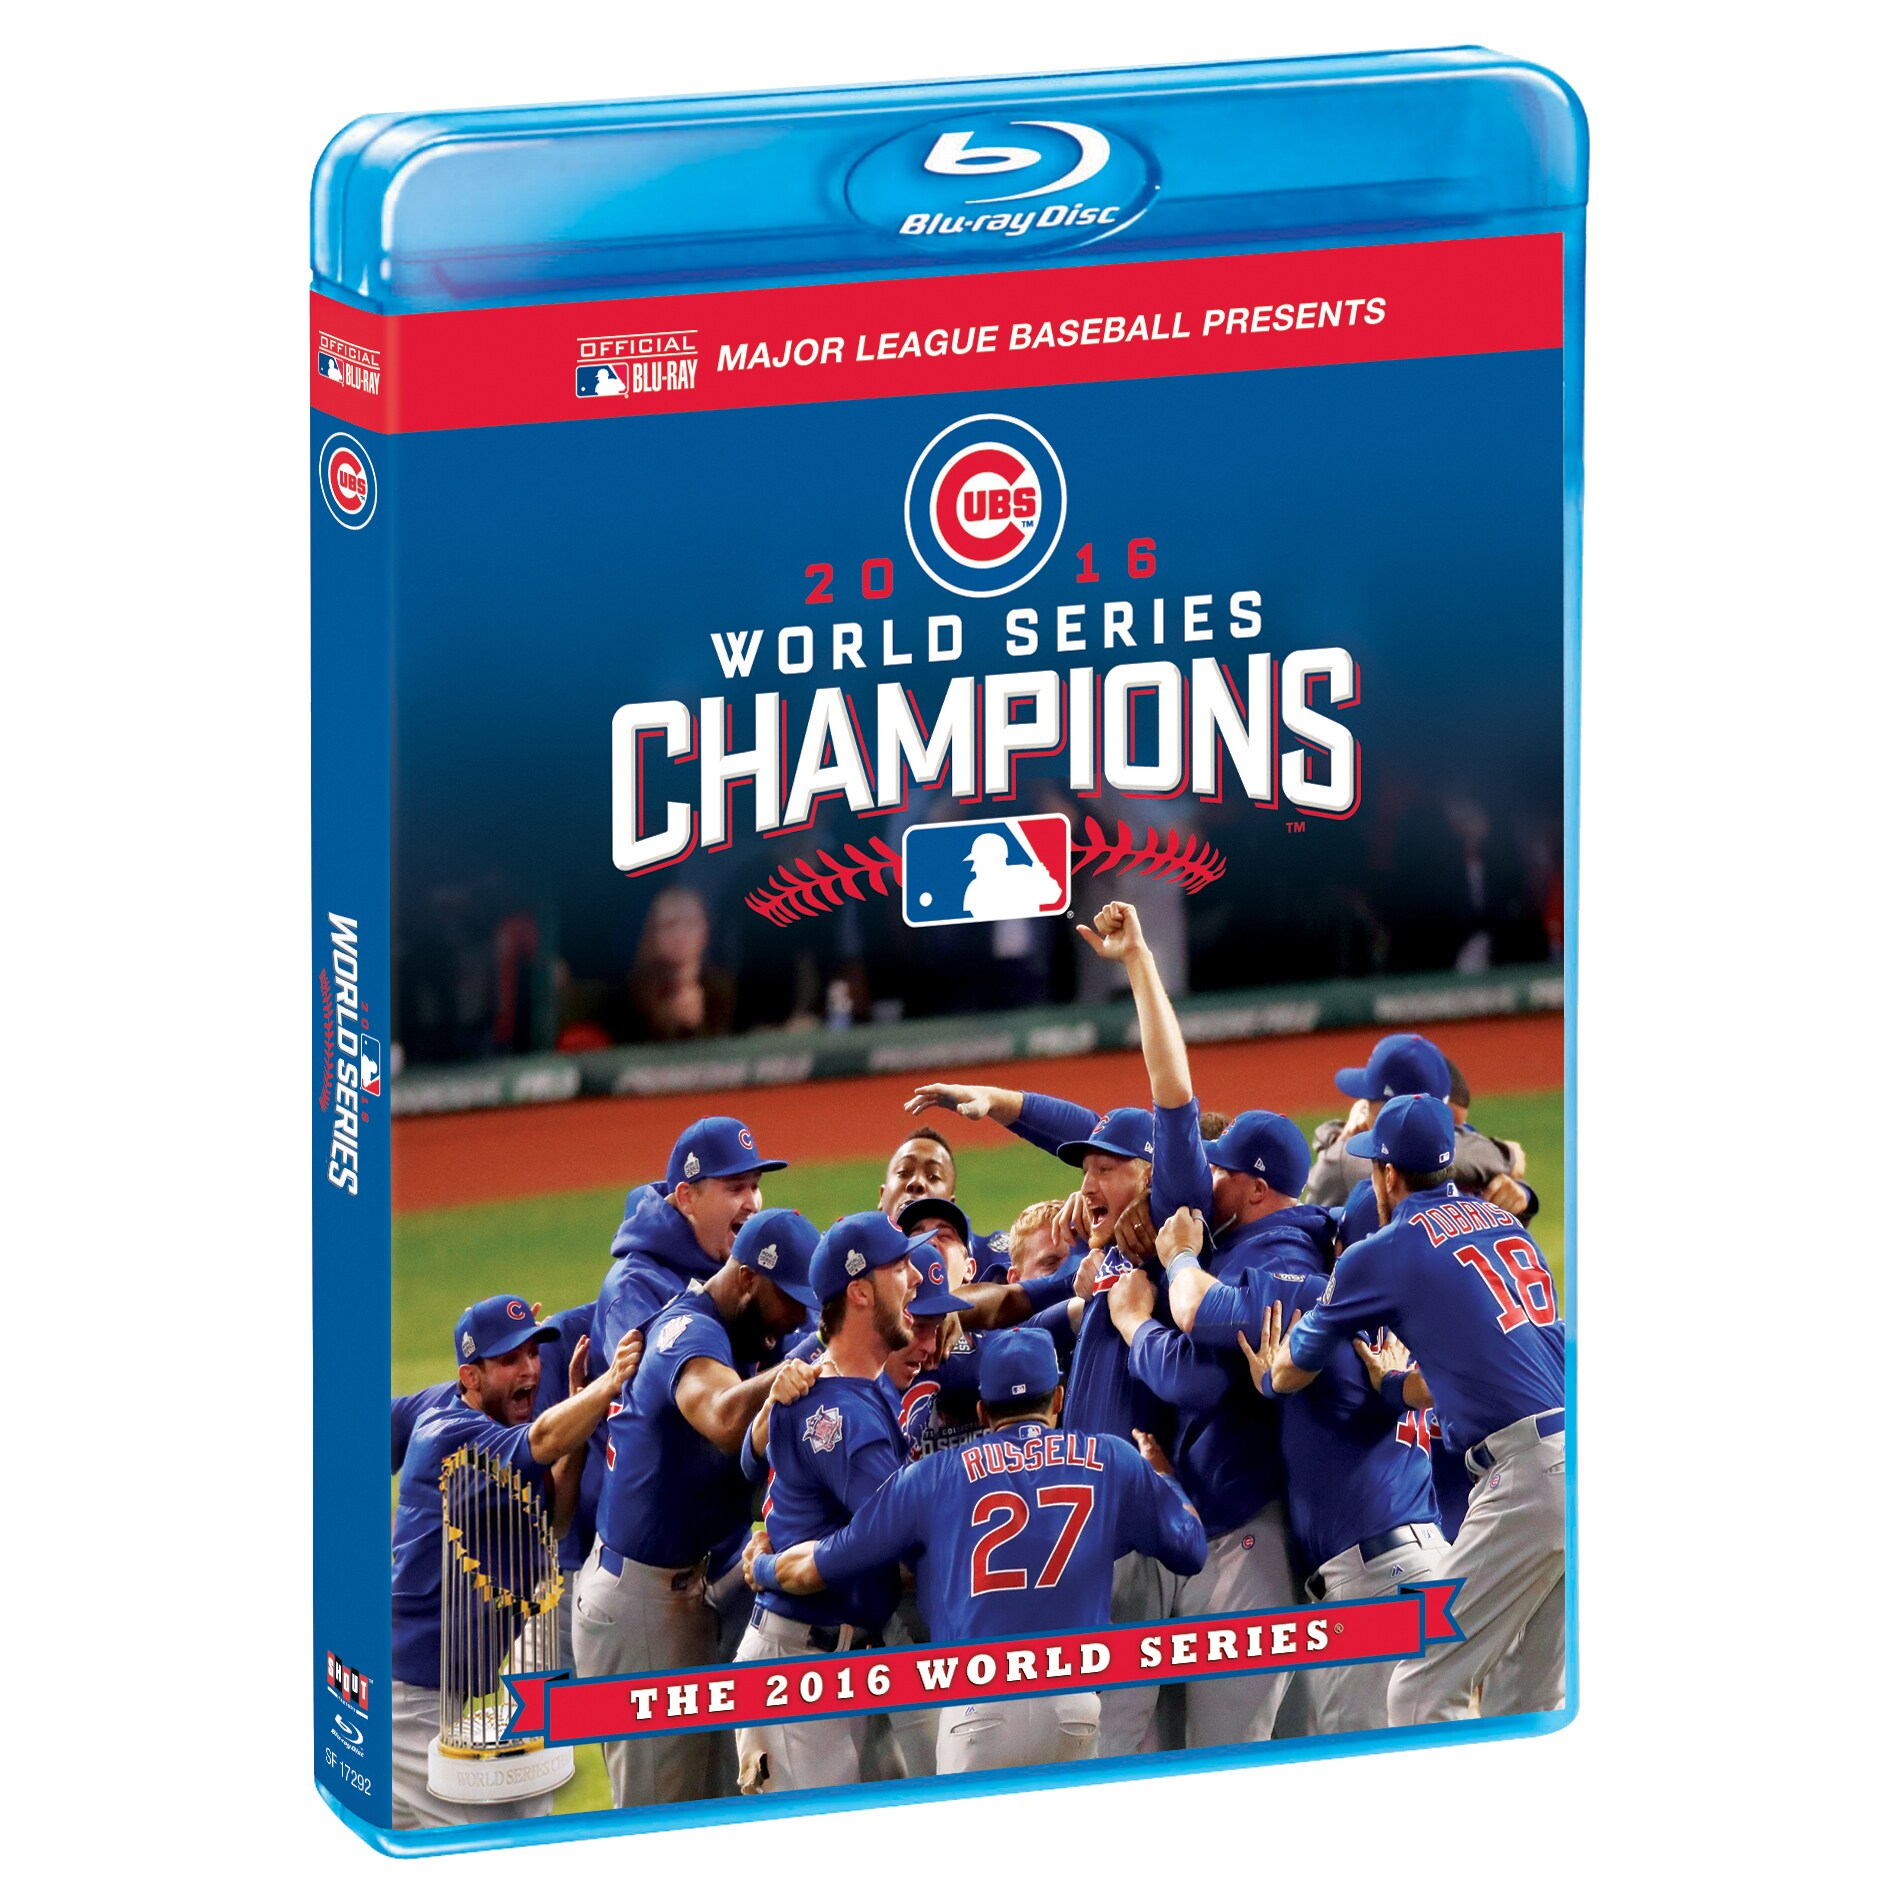 Chicago Cubs 2016 World Series Champions Commemorative Blu-Ray